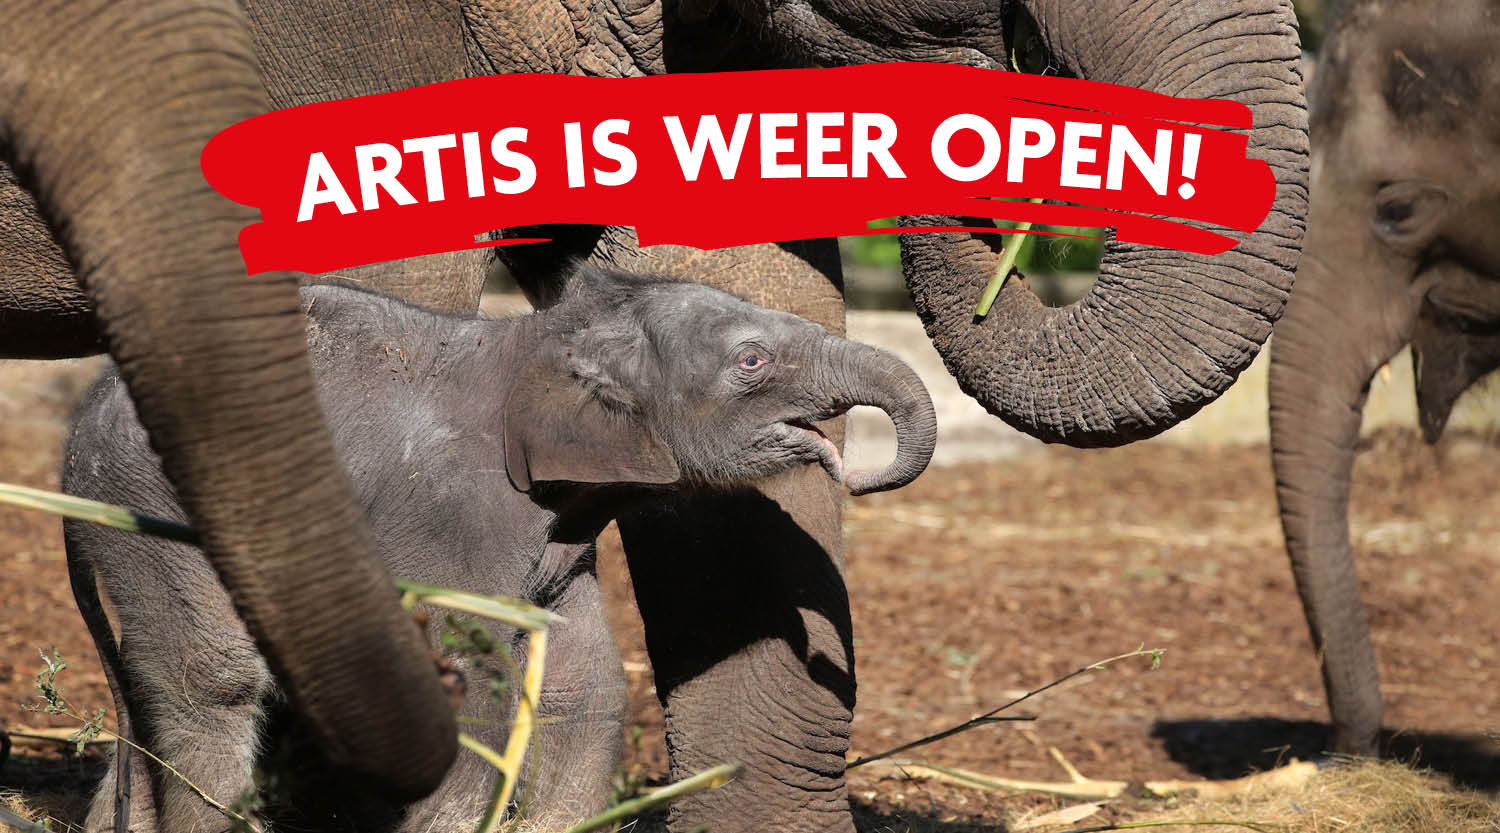 Artis-is weer open